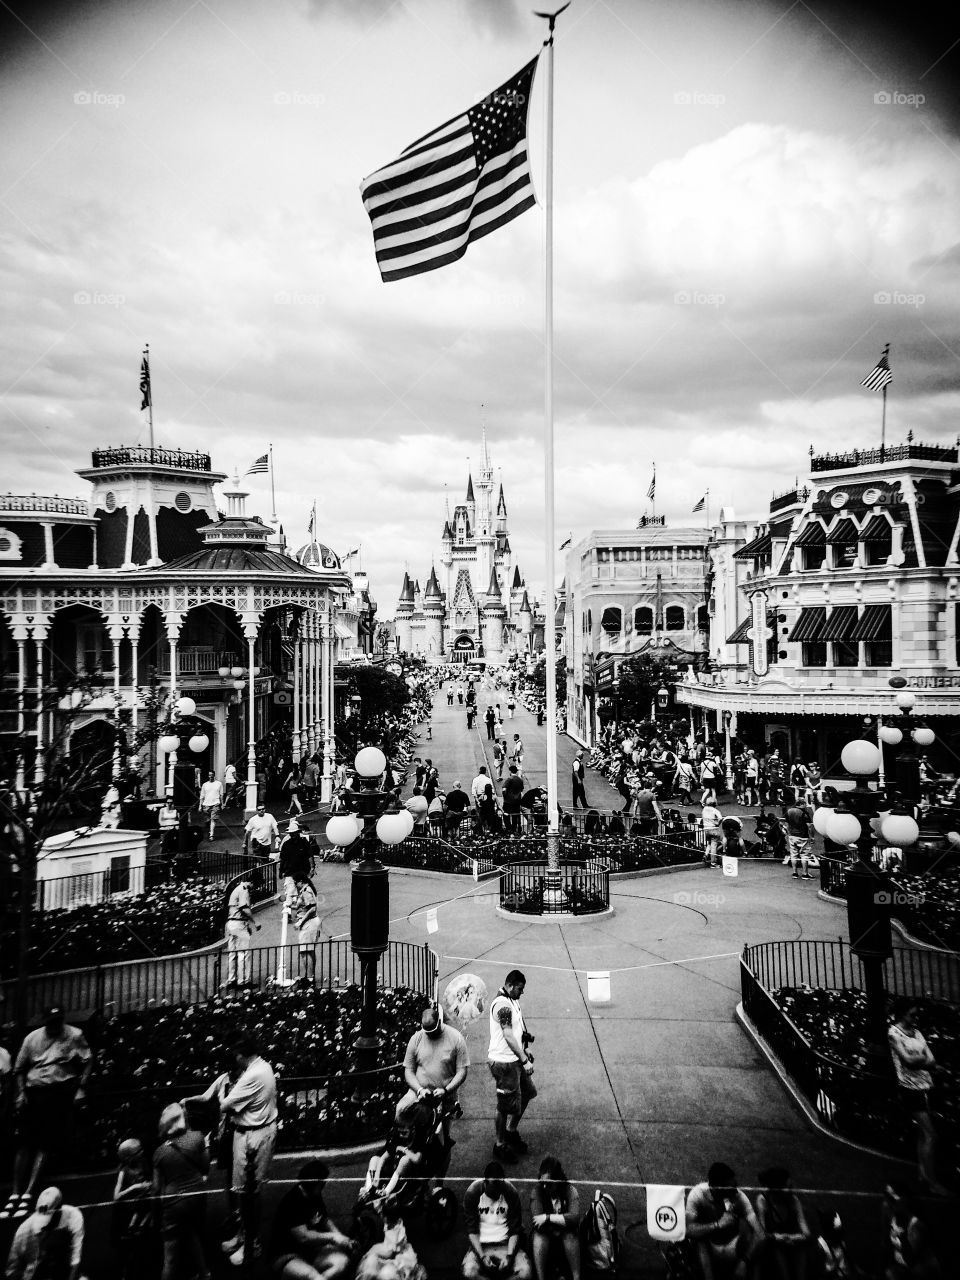 Main Street USA. Walt Disney's version of the atypical Main Street as it plays out at the Magic Kingdom in Florida.